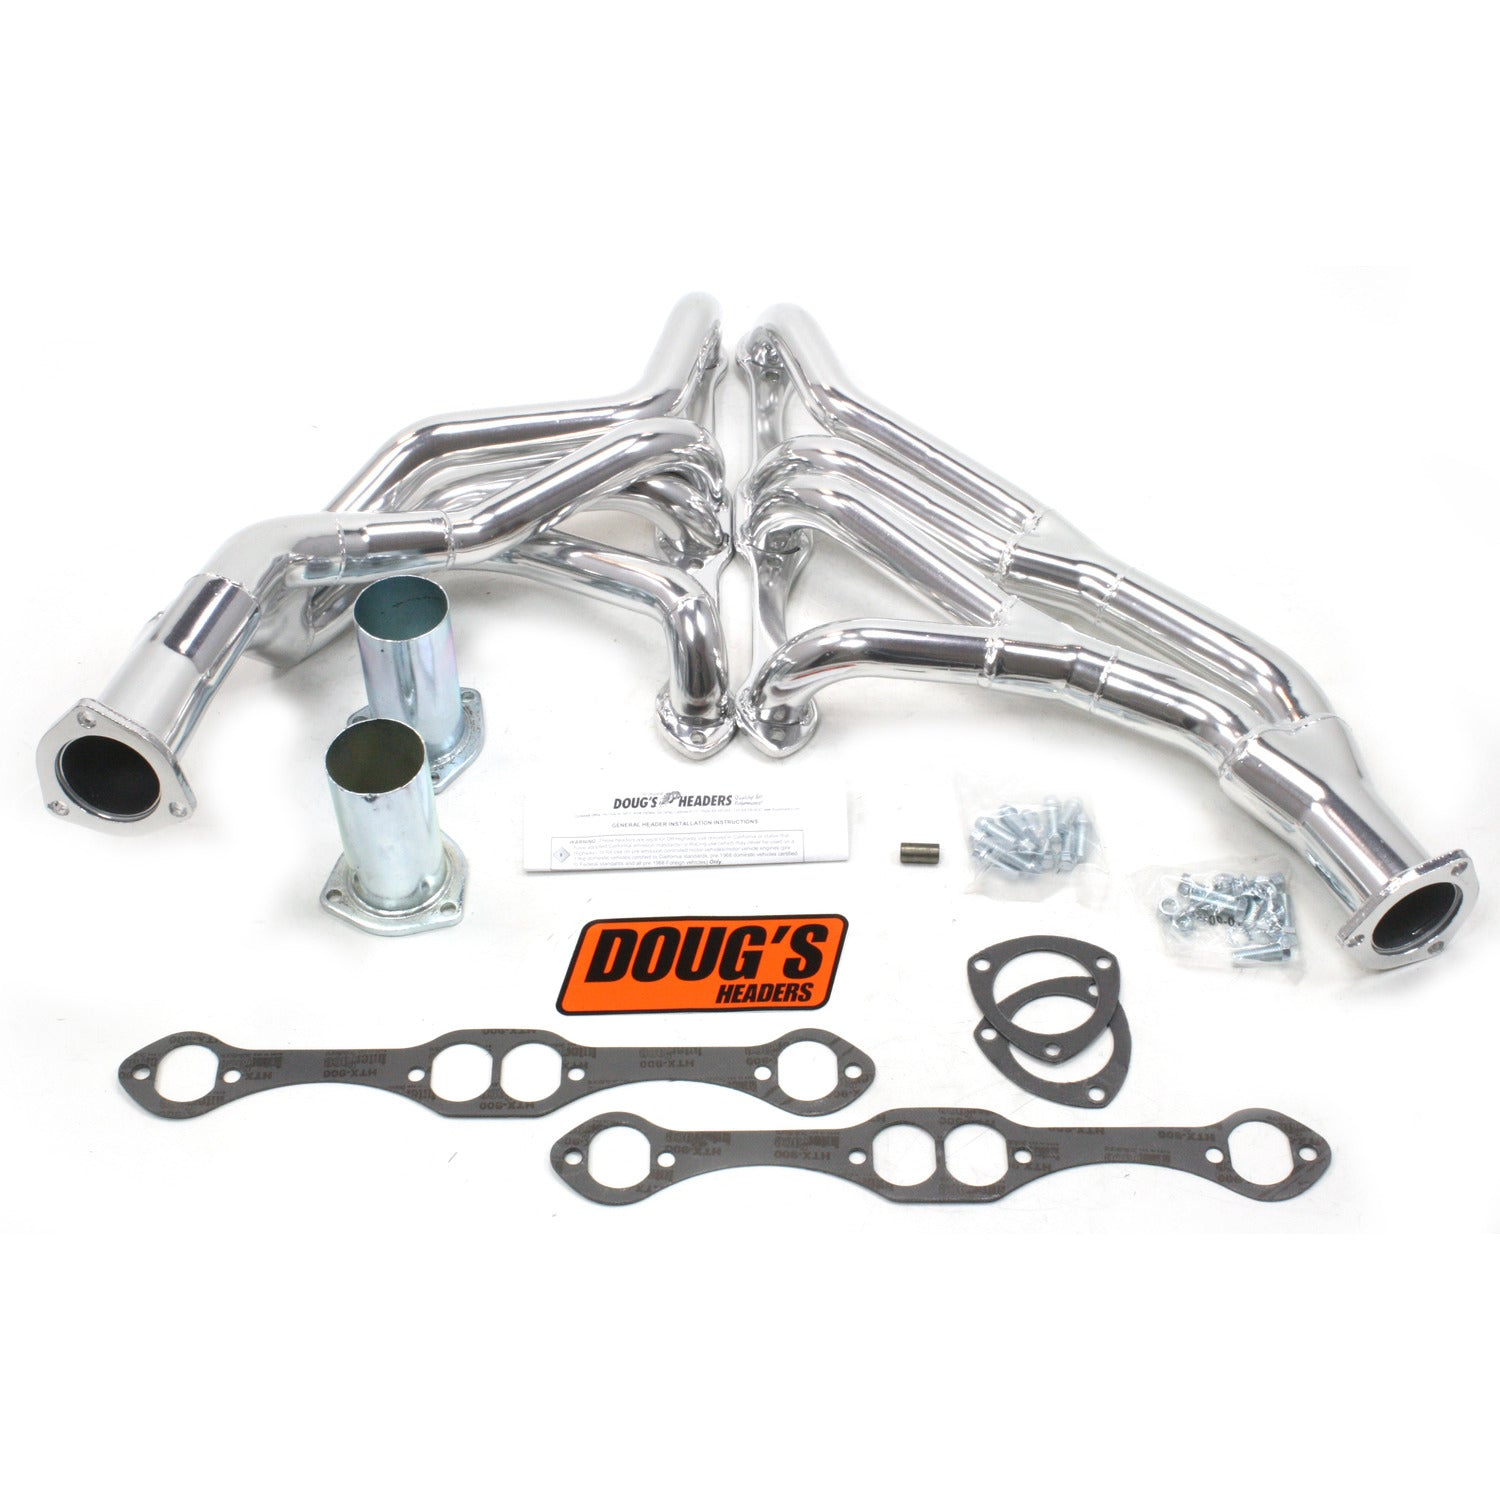 "Doug's Headers D372Y 1 5/8"" Tri-Y Header Chevrolet Truck Small Block Chevrolet 67-72 Metallic Ceramic Coating"